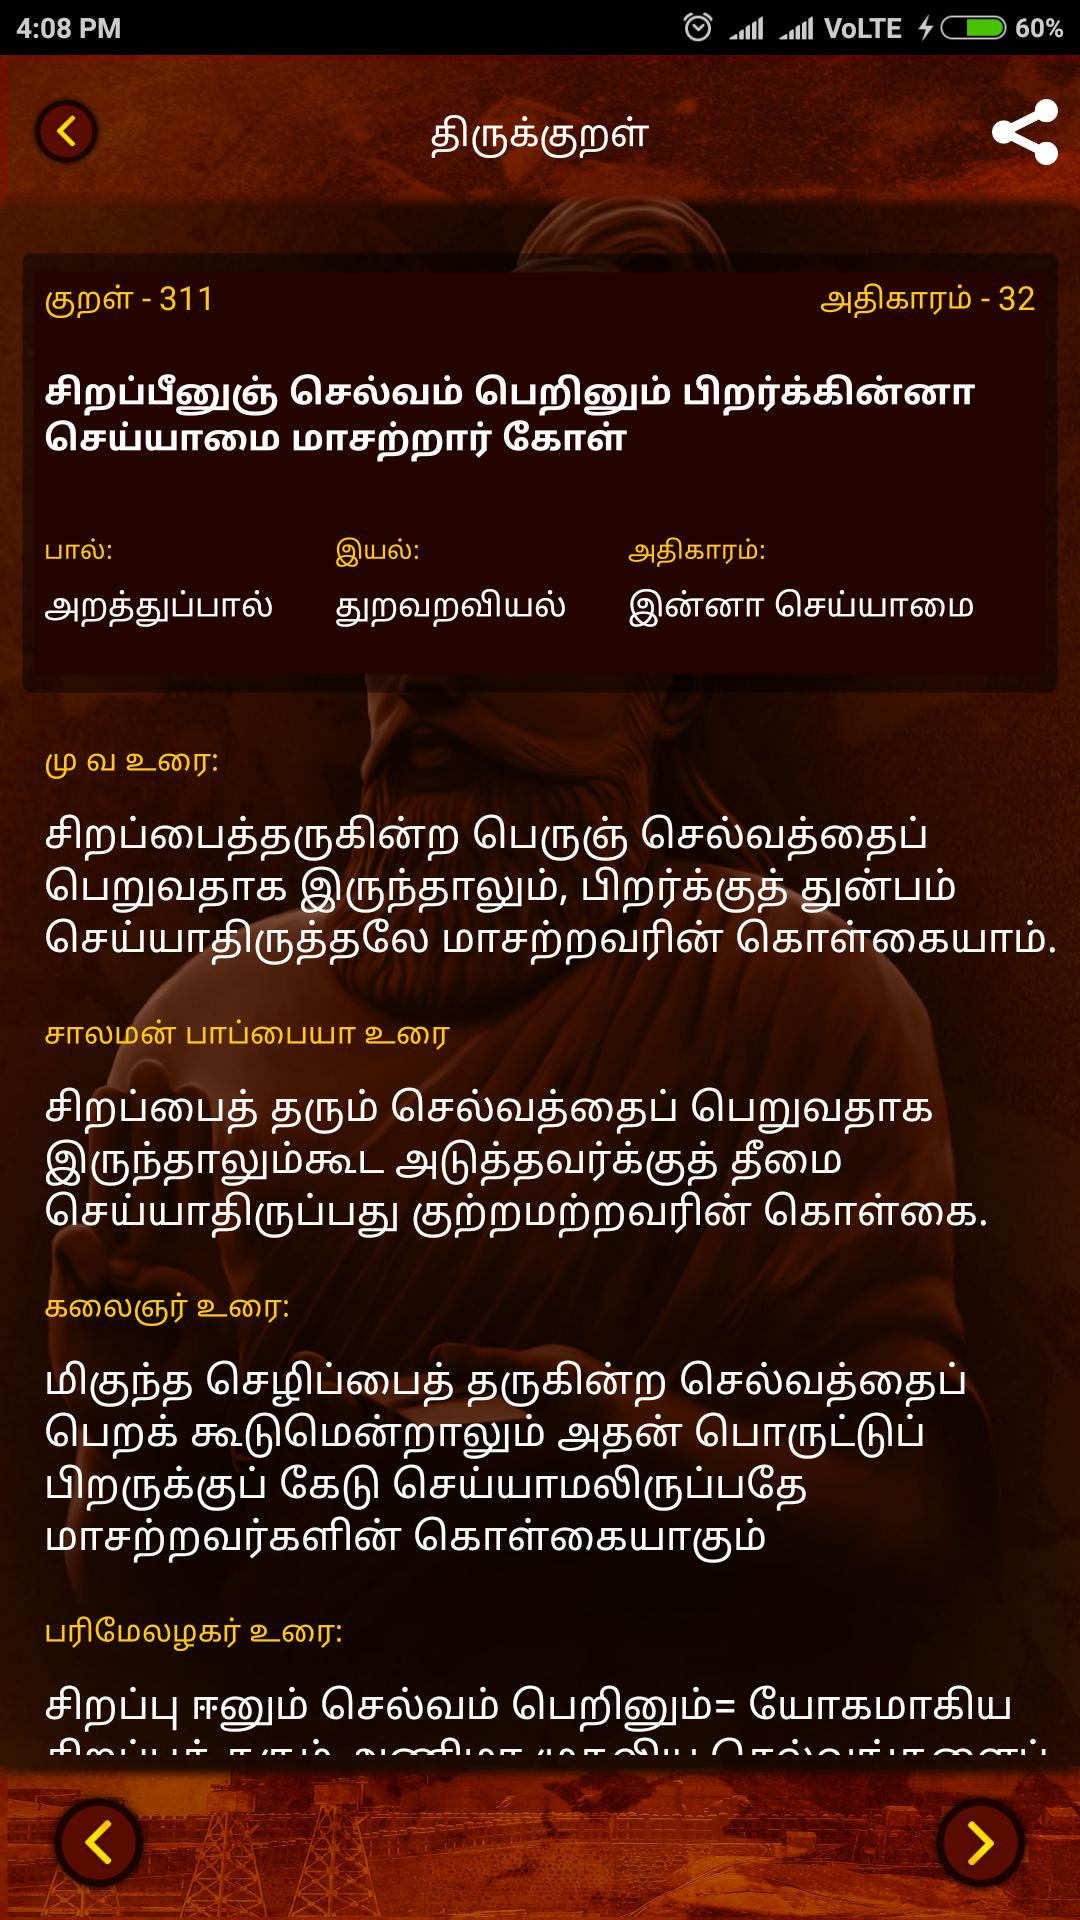 thirukkural tamil meaning pdf free download